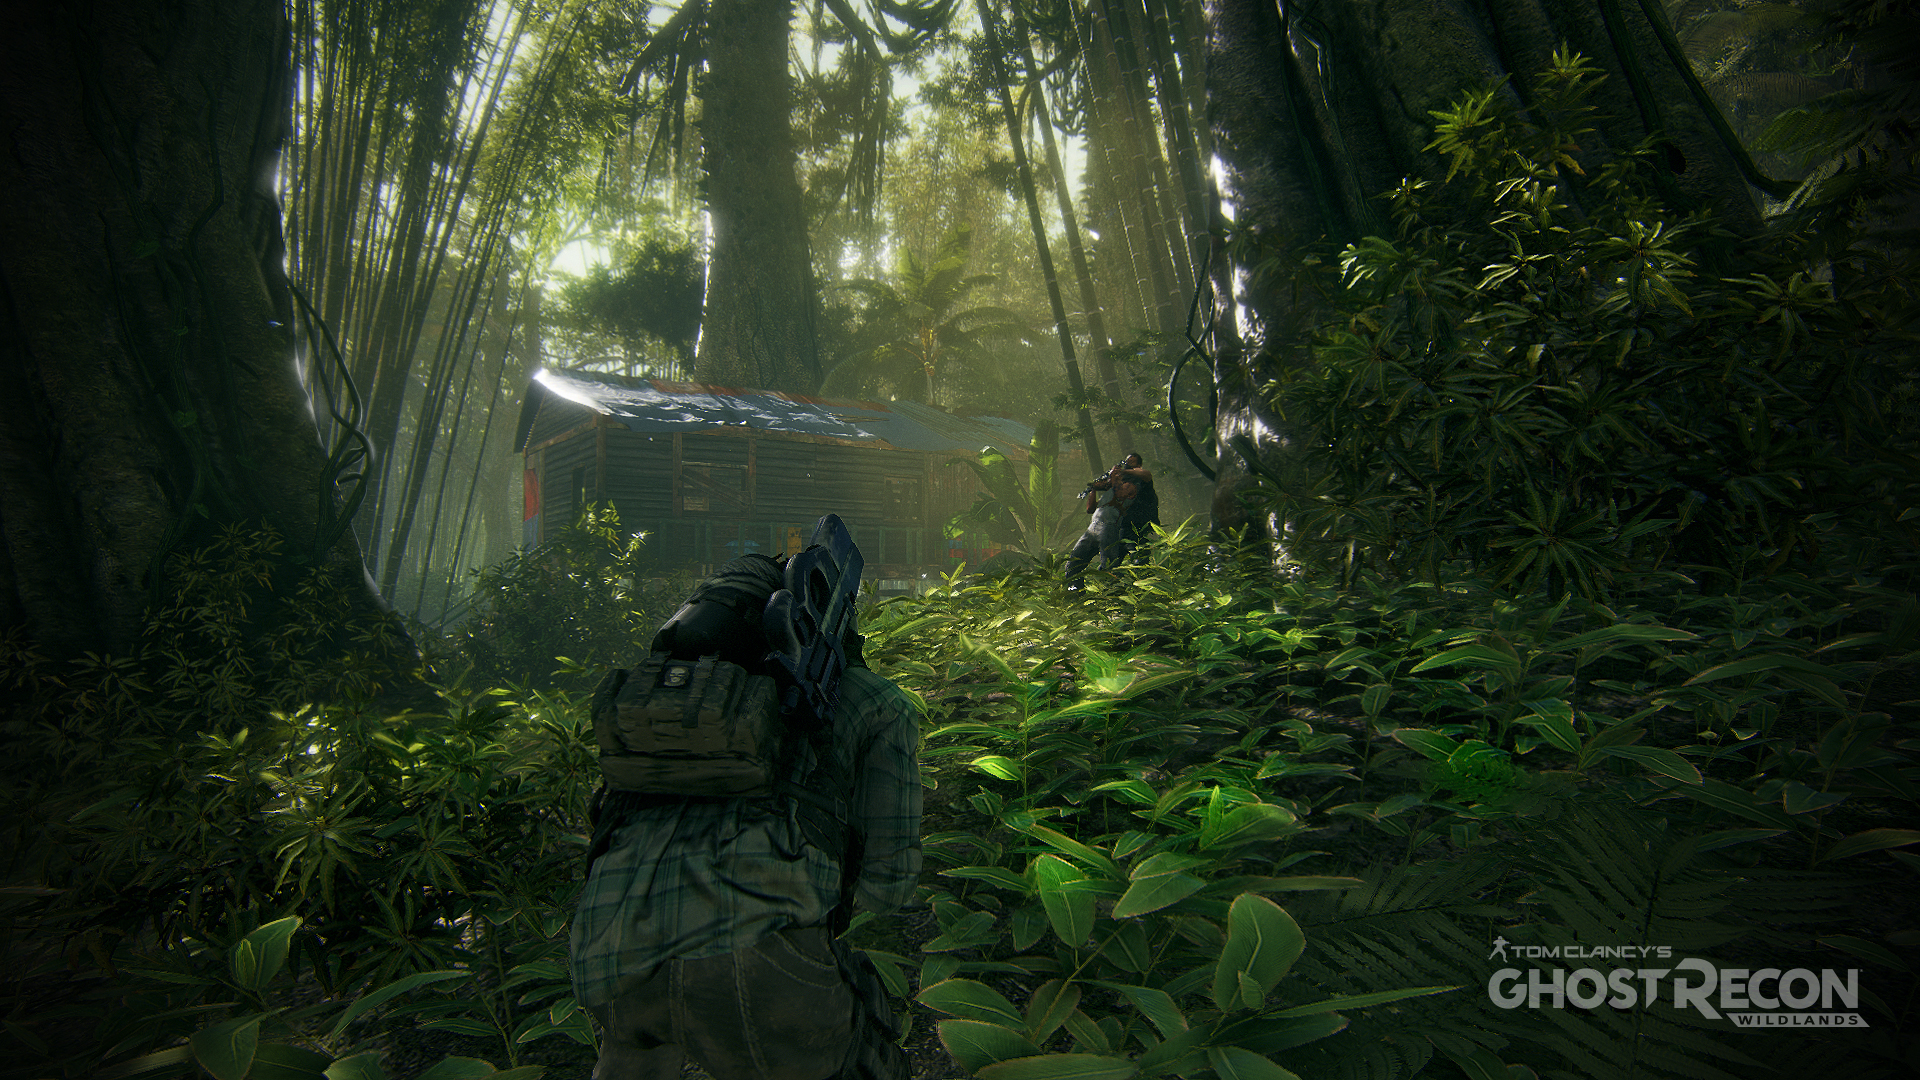 ghost recon download